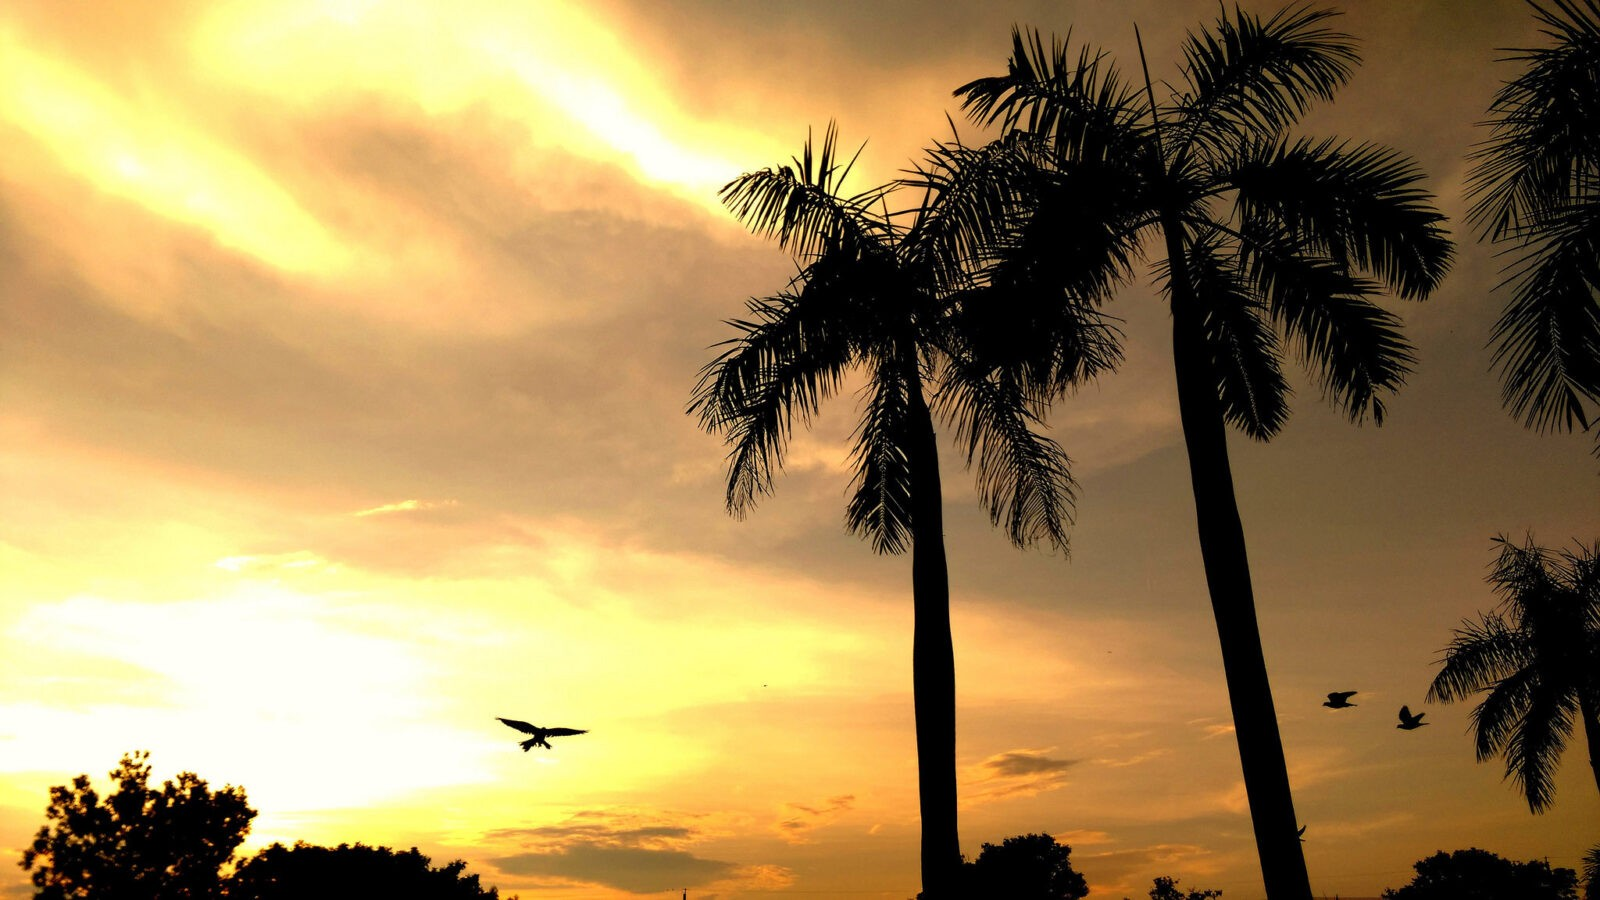 Palm trees sunset high quality background